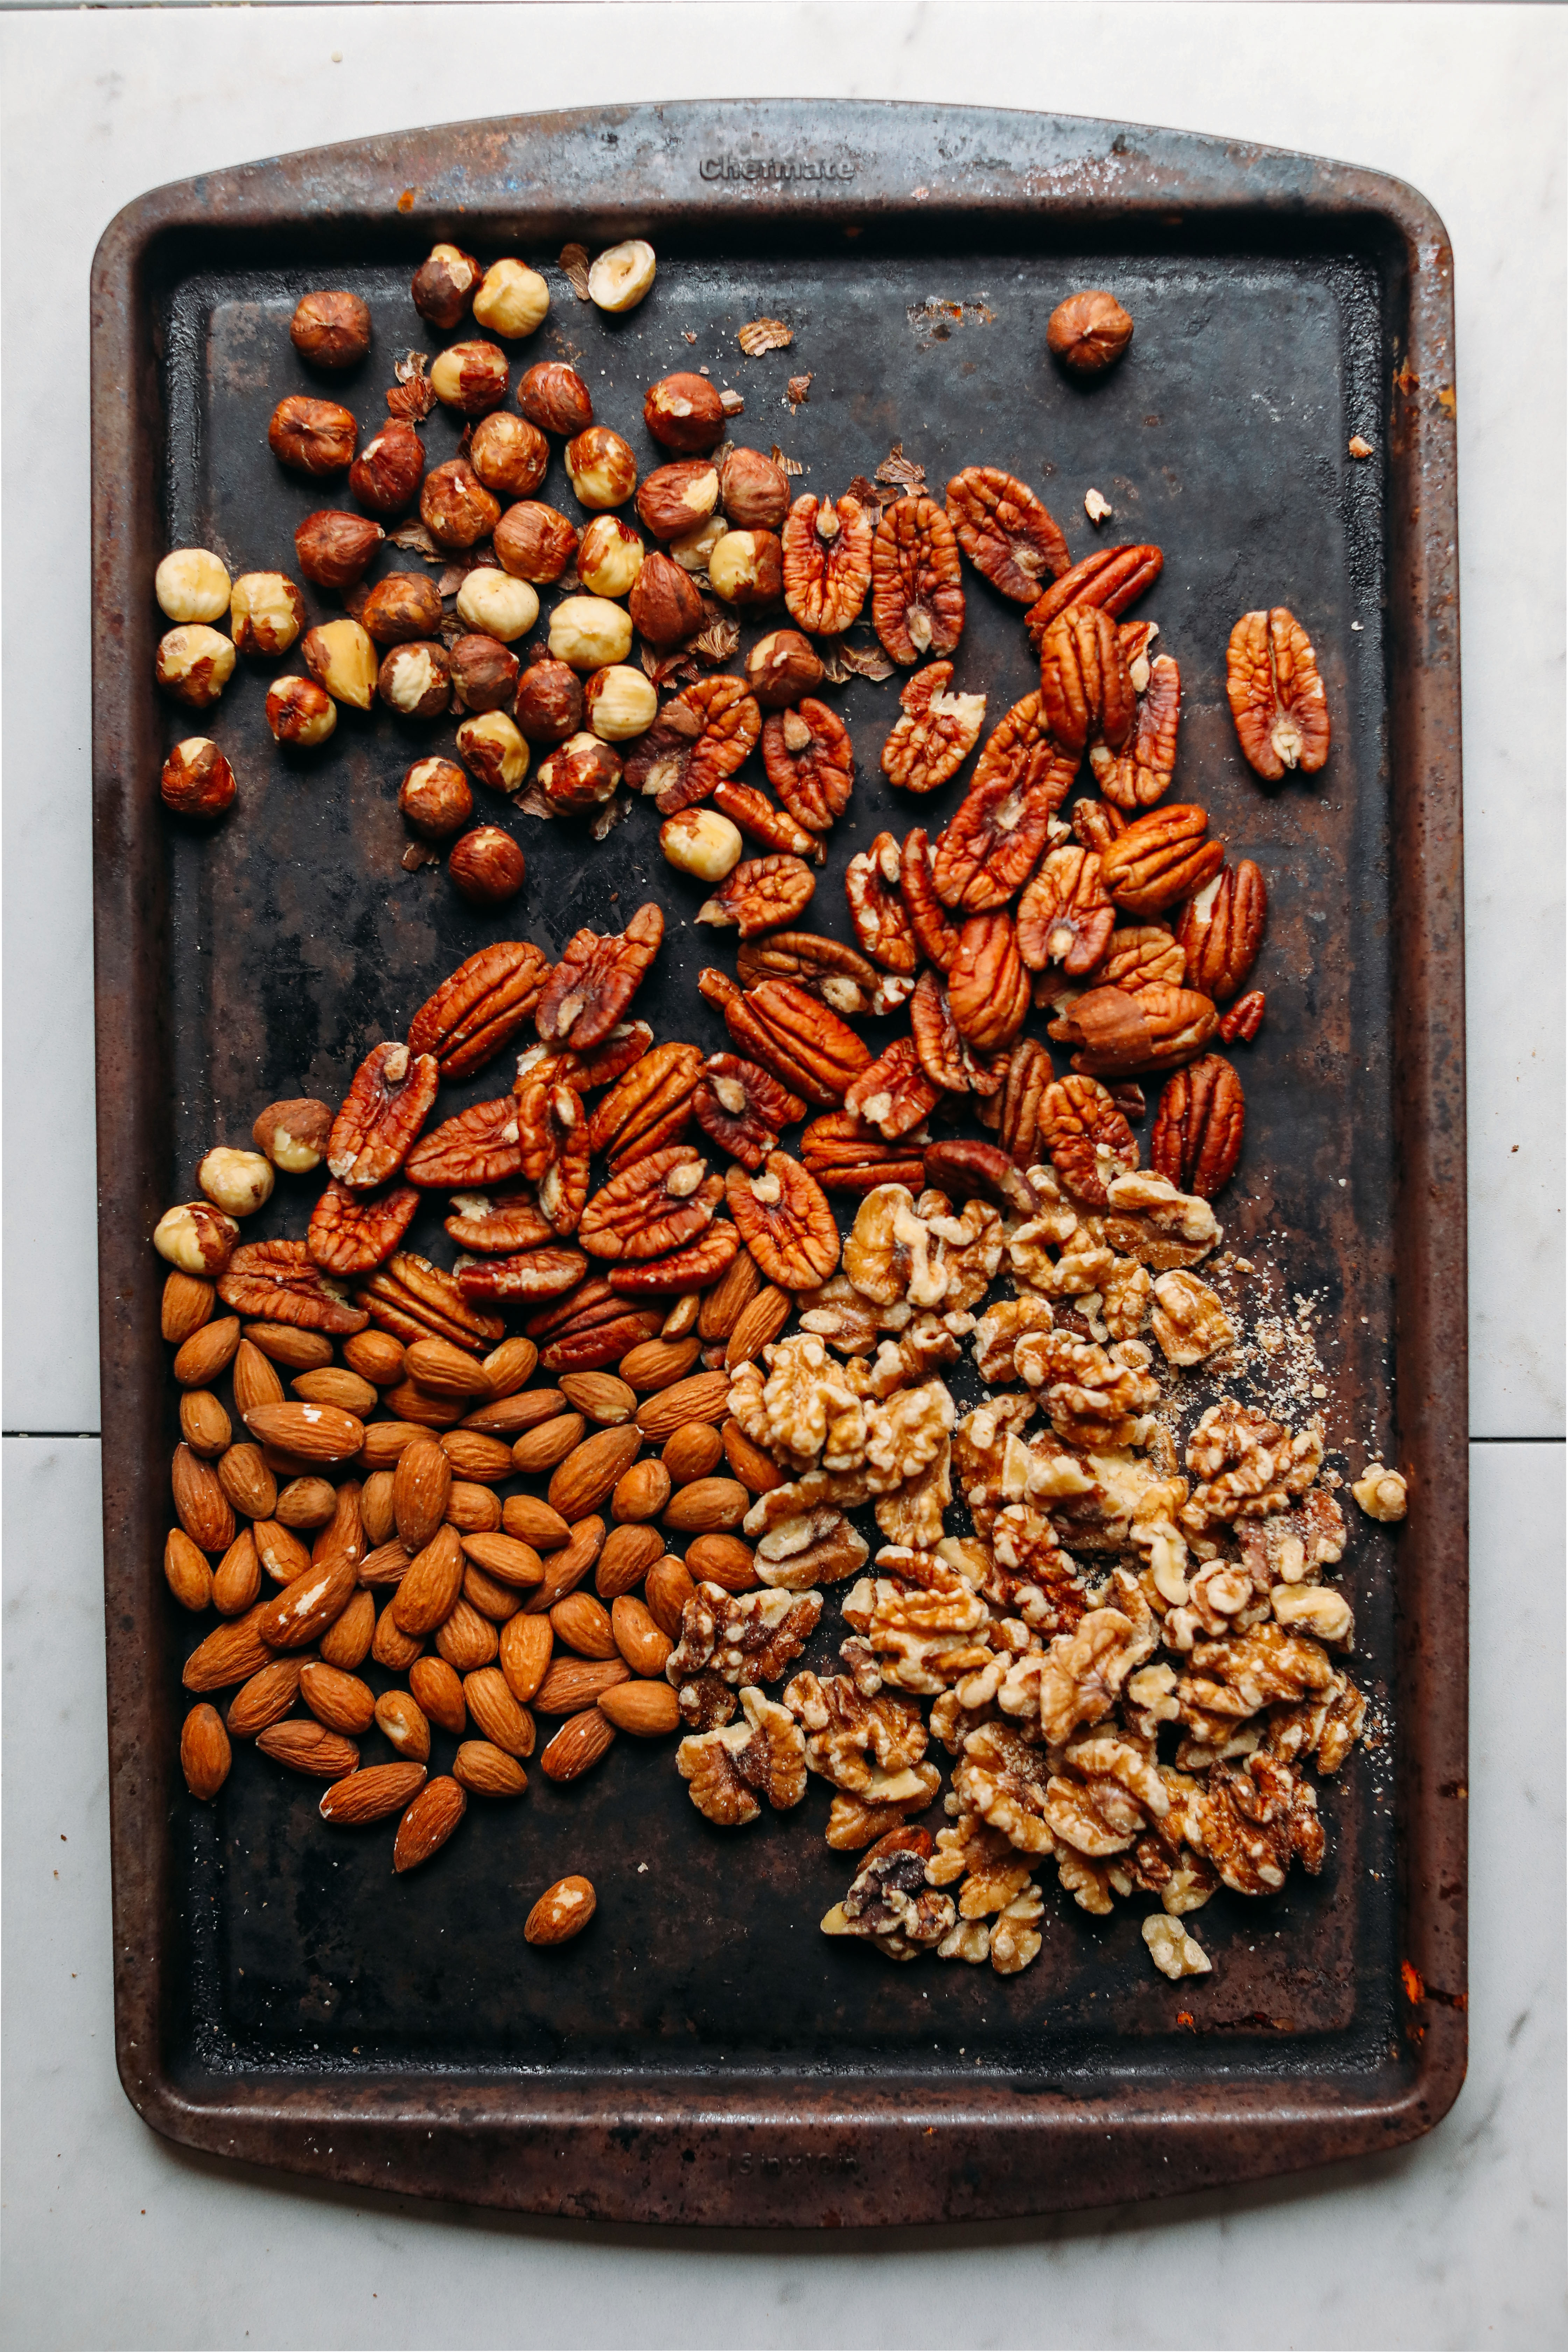 Baking sheet filled with nuts for making homemade nut butter